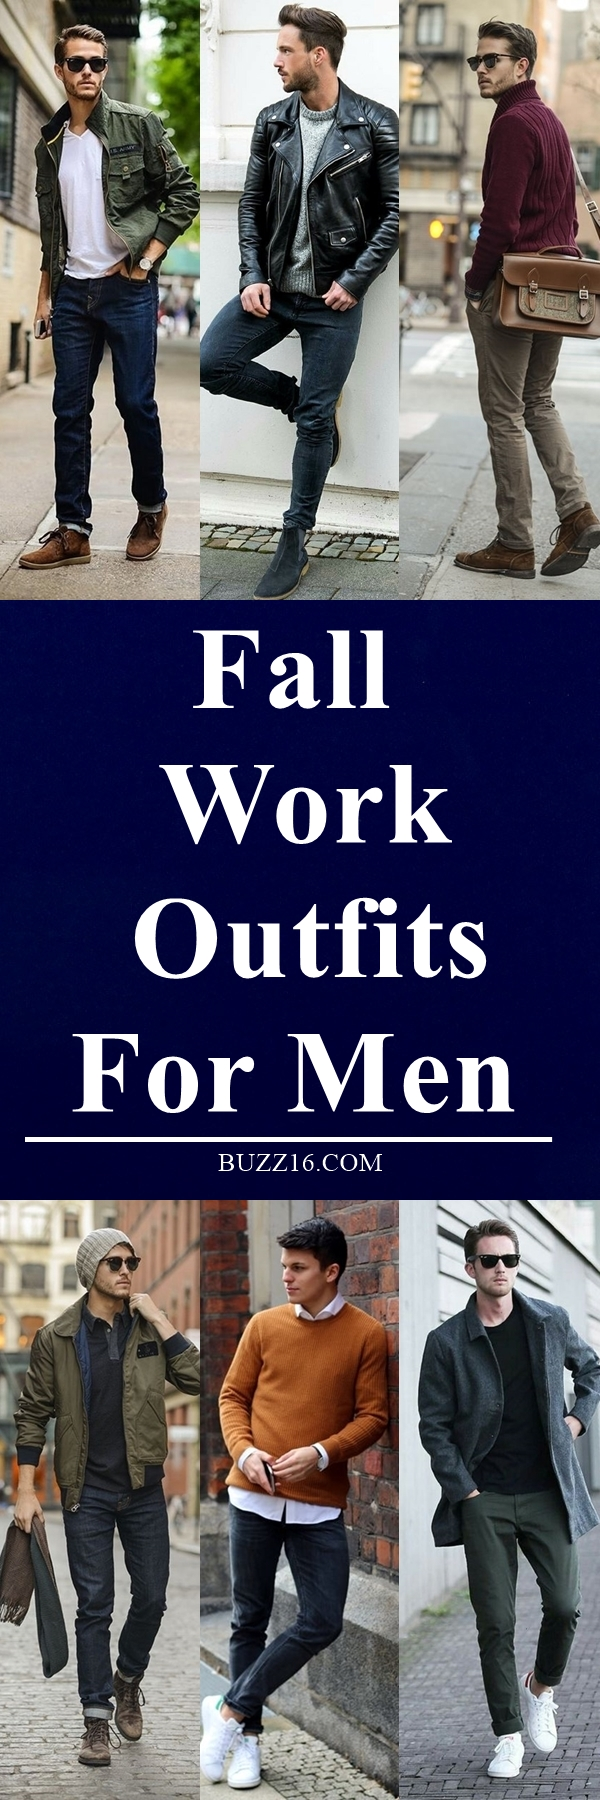 40 Fall Work Outfits For Men